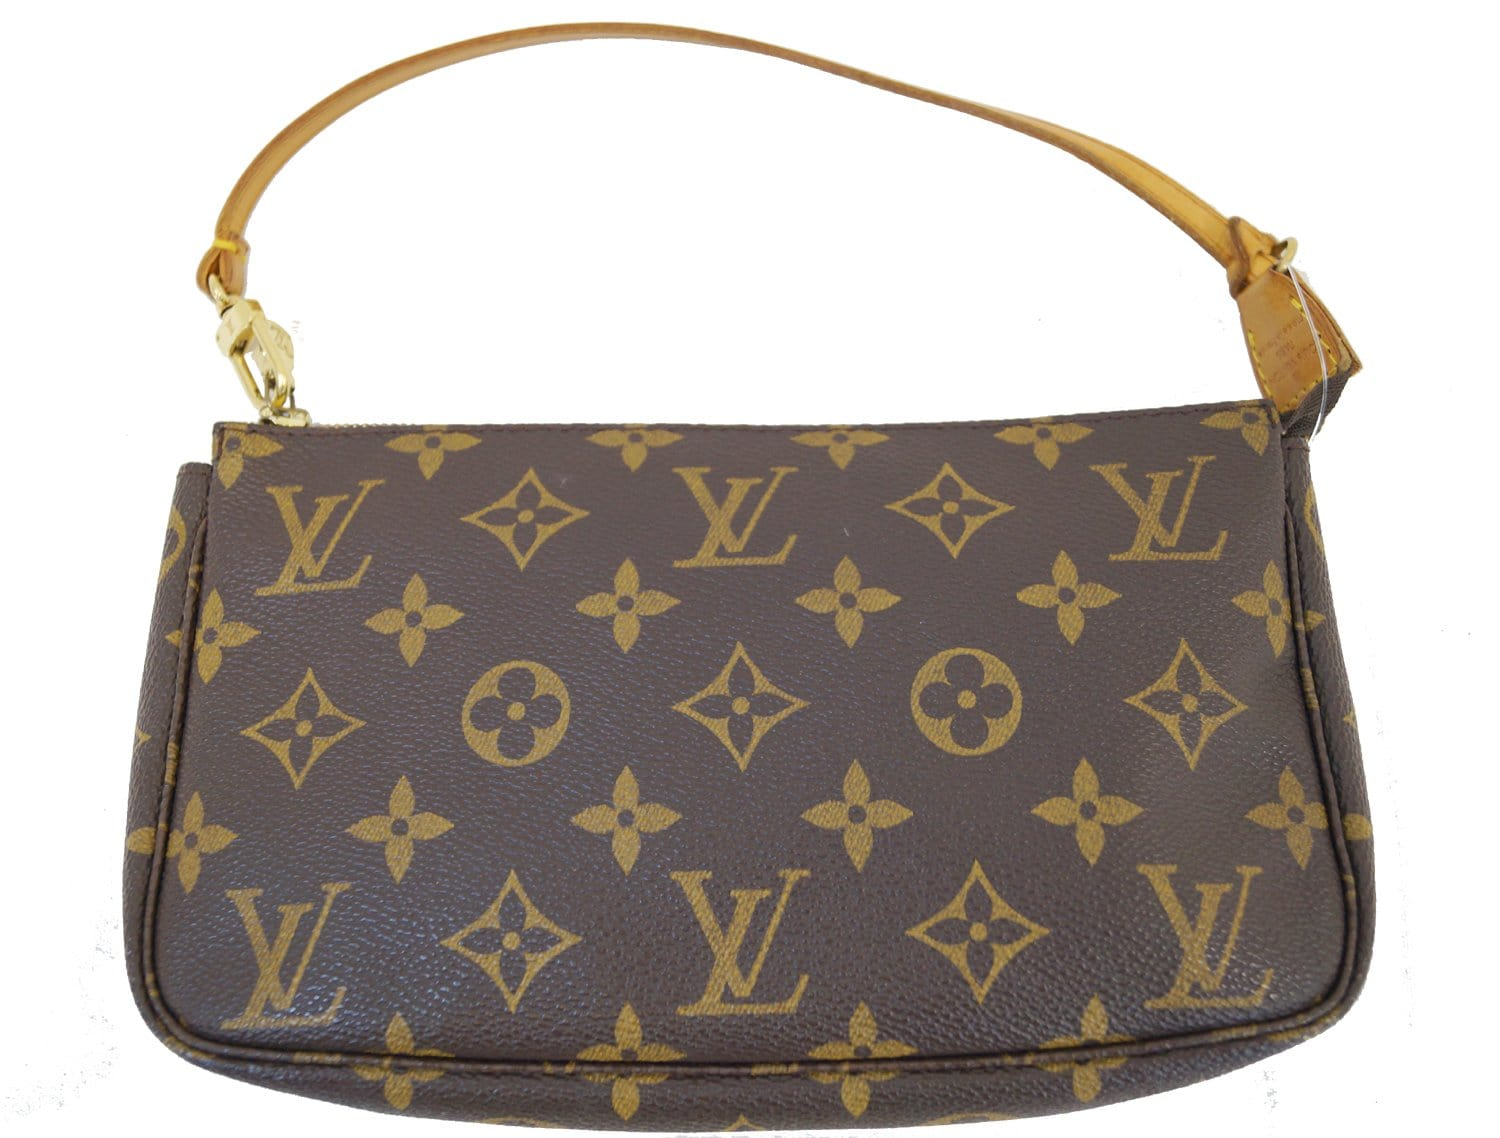 df15ff126398 Authentic LOUIS VUITTON Monogram Pochette Accessoires Pouch ...